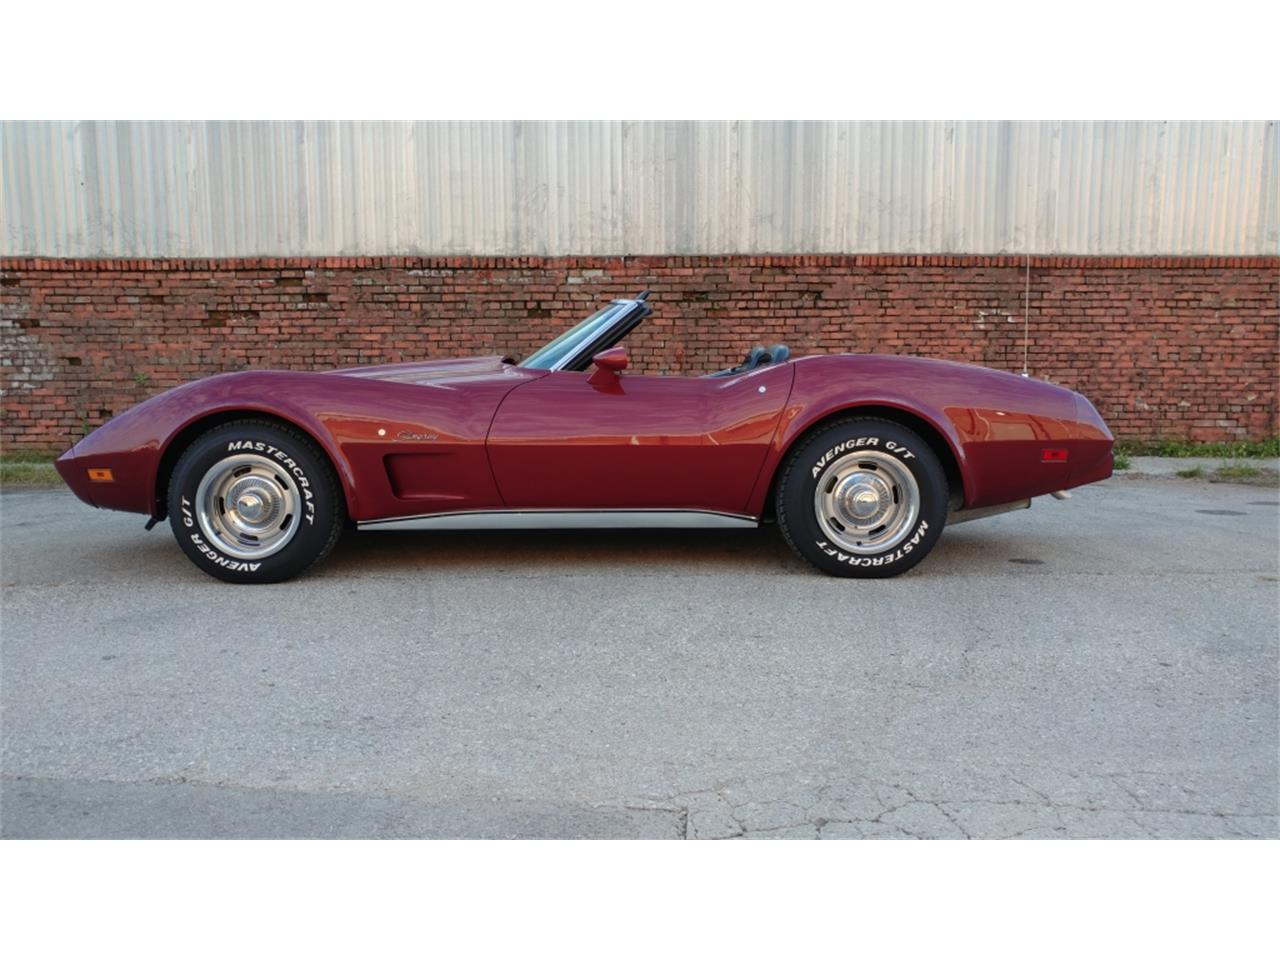 Large Picture of 1975 Corvette located in Missouri Offered by Vintage Vettes, LLC - MO2D